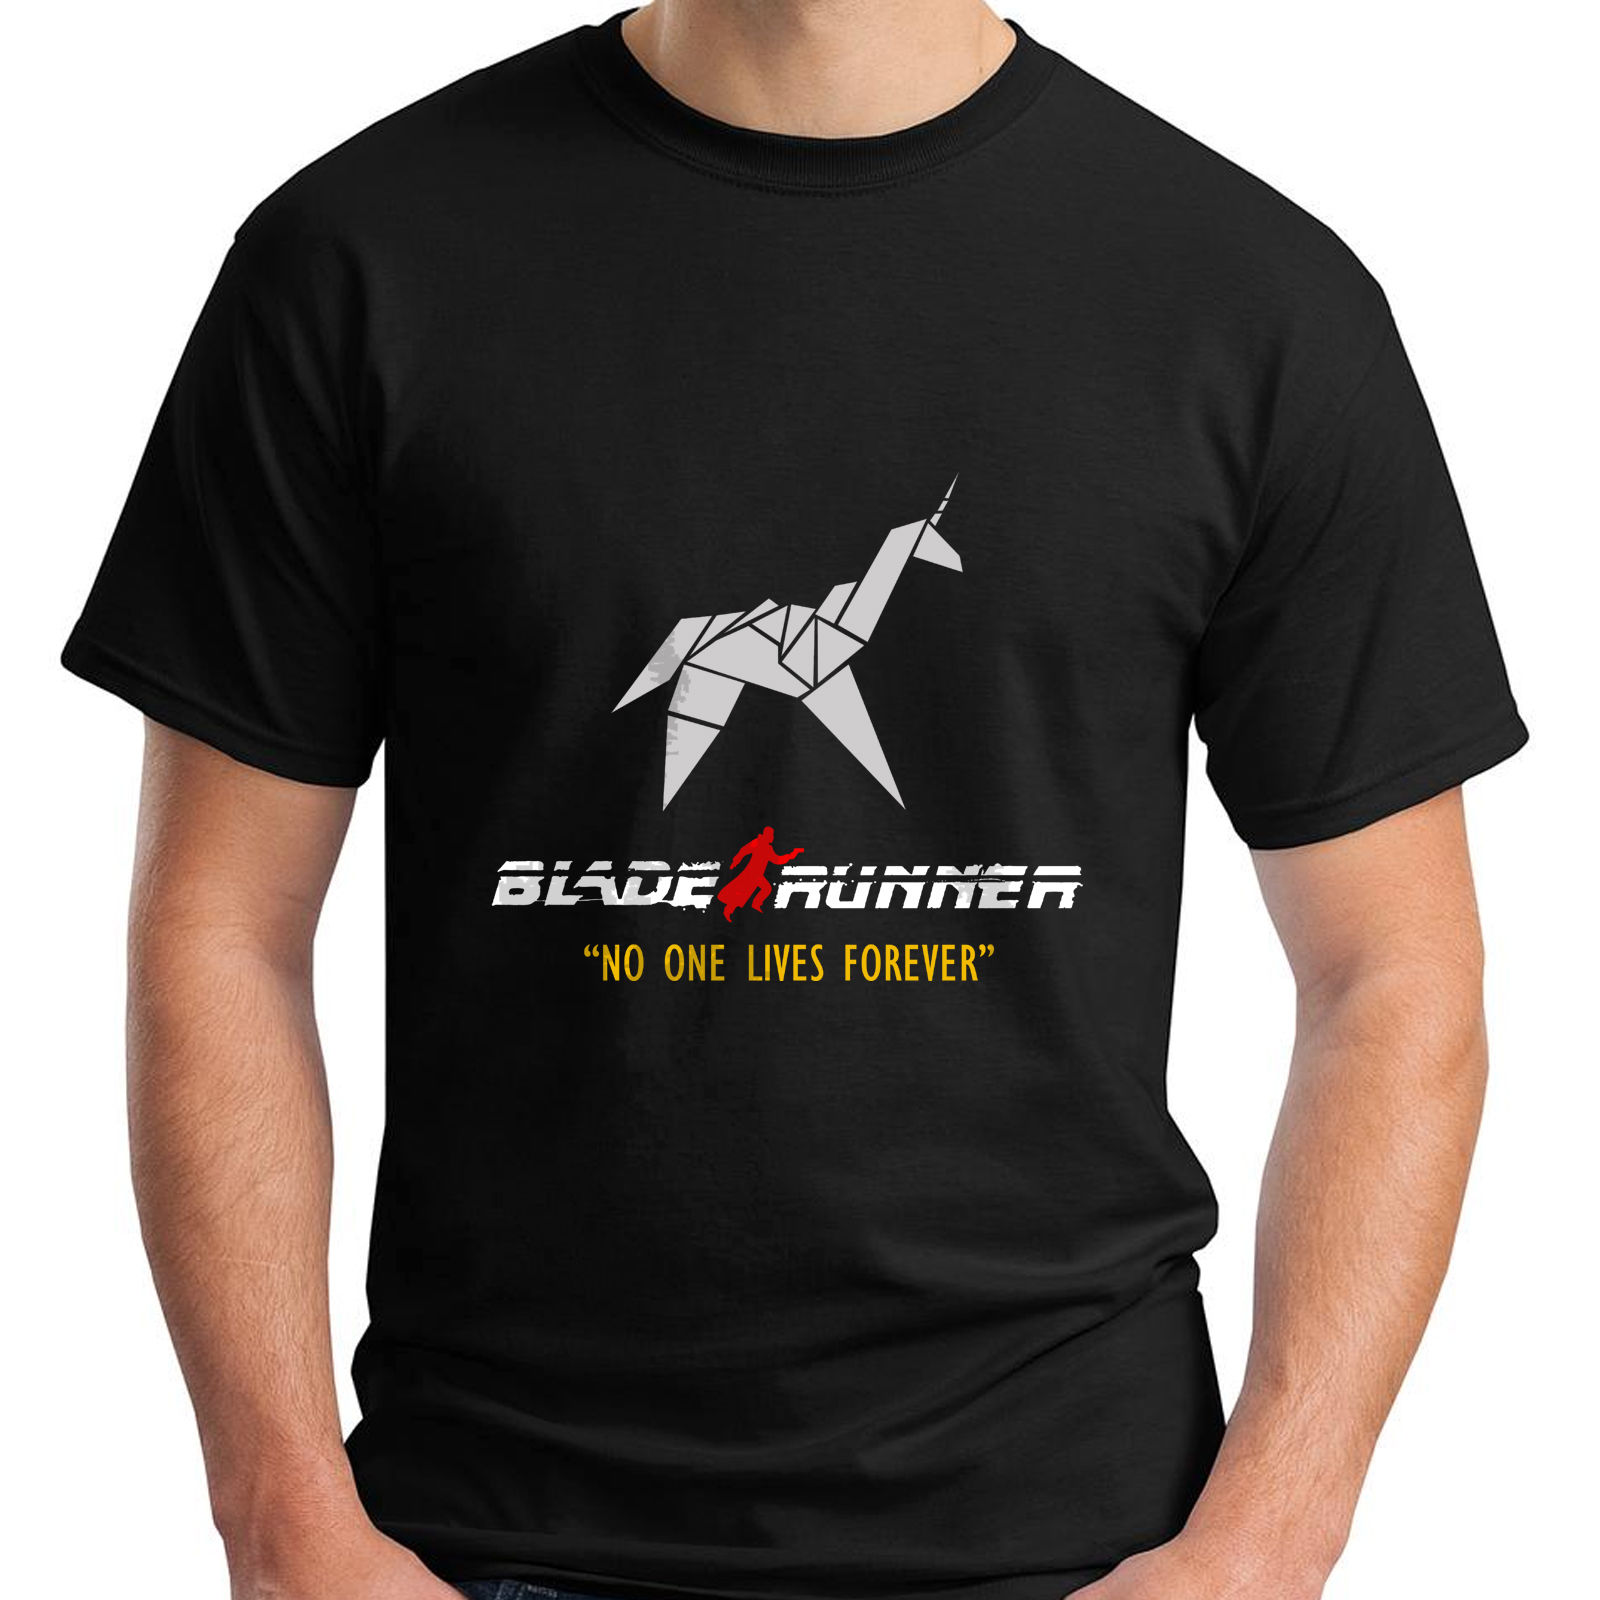 New Blade Runner Origami Unicorn Retro 80'S Classic Sci Fi Movie T Shirt S 5Xl Summer Men'S Fashion Tee Comfortable T Shirt image